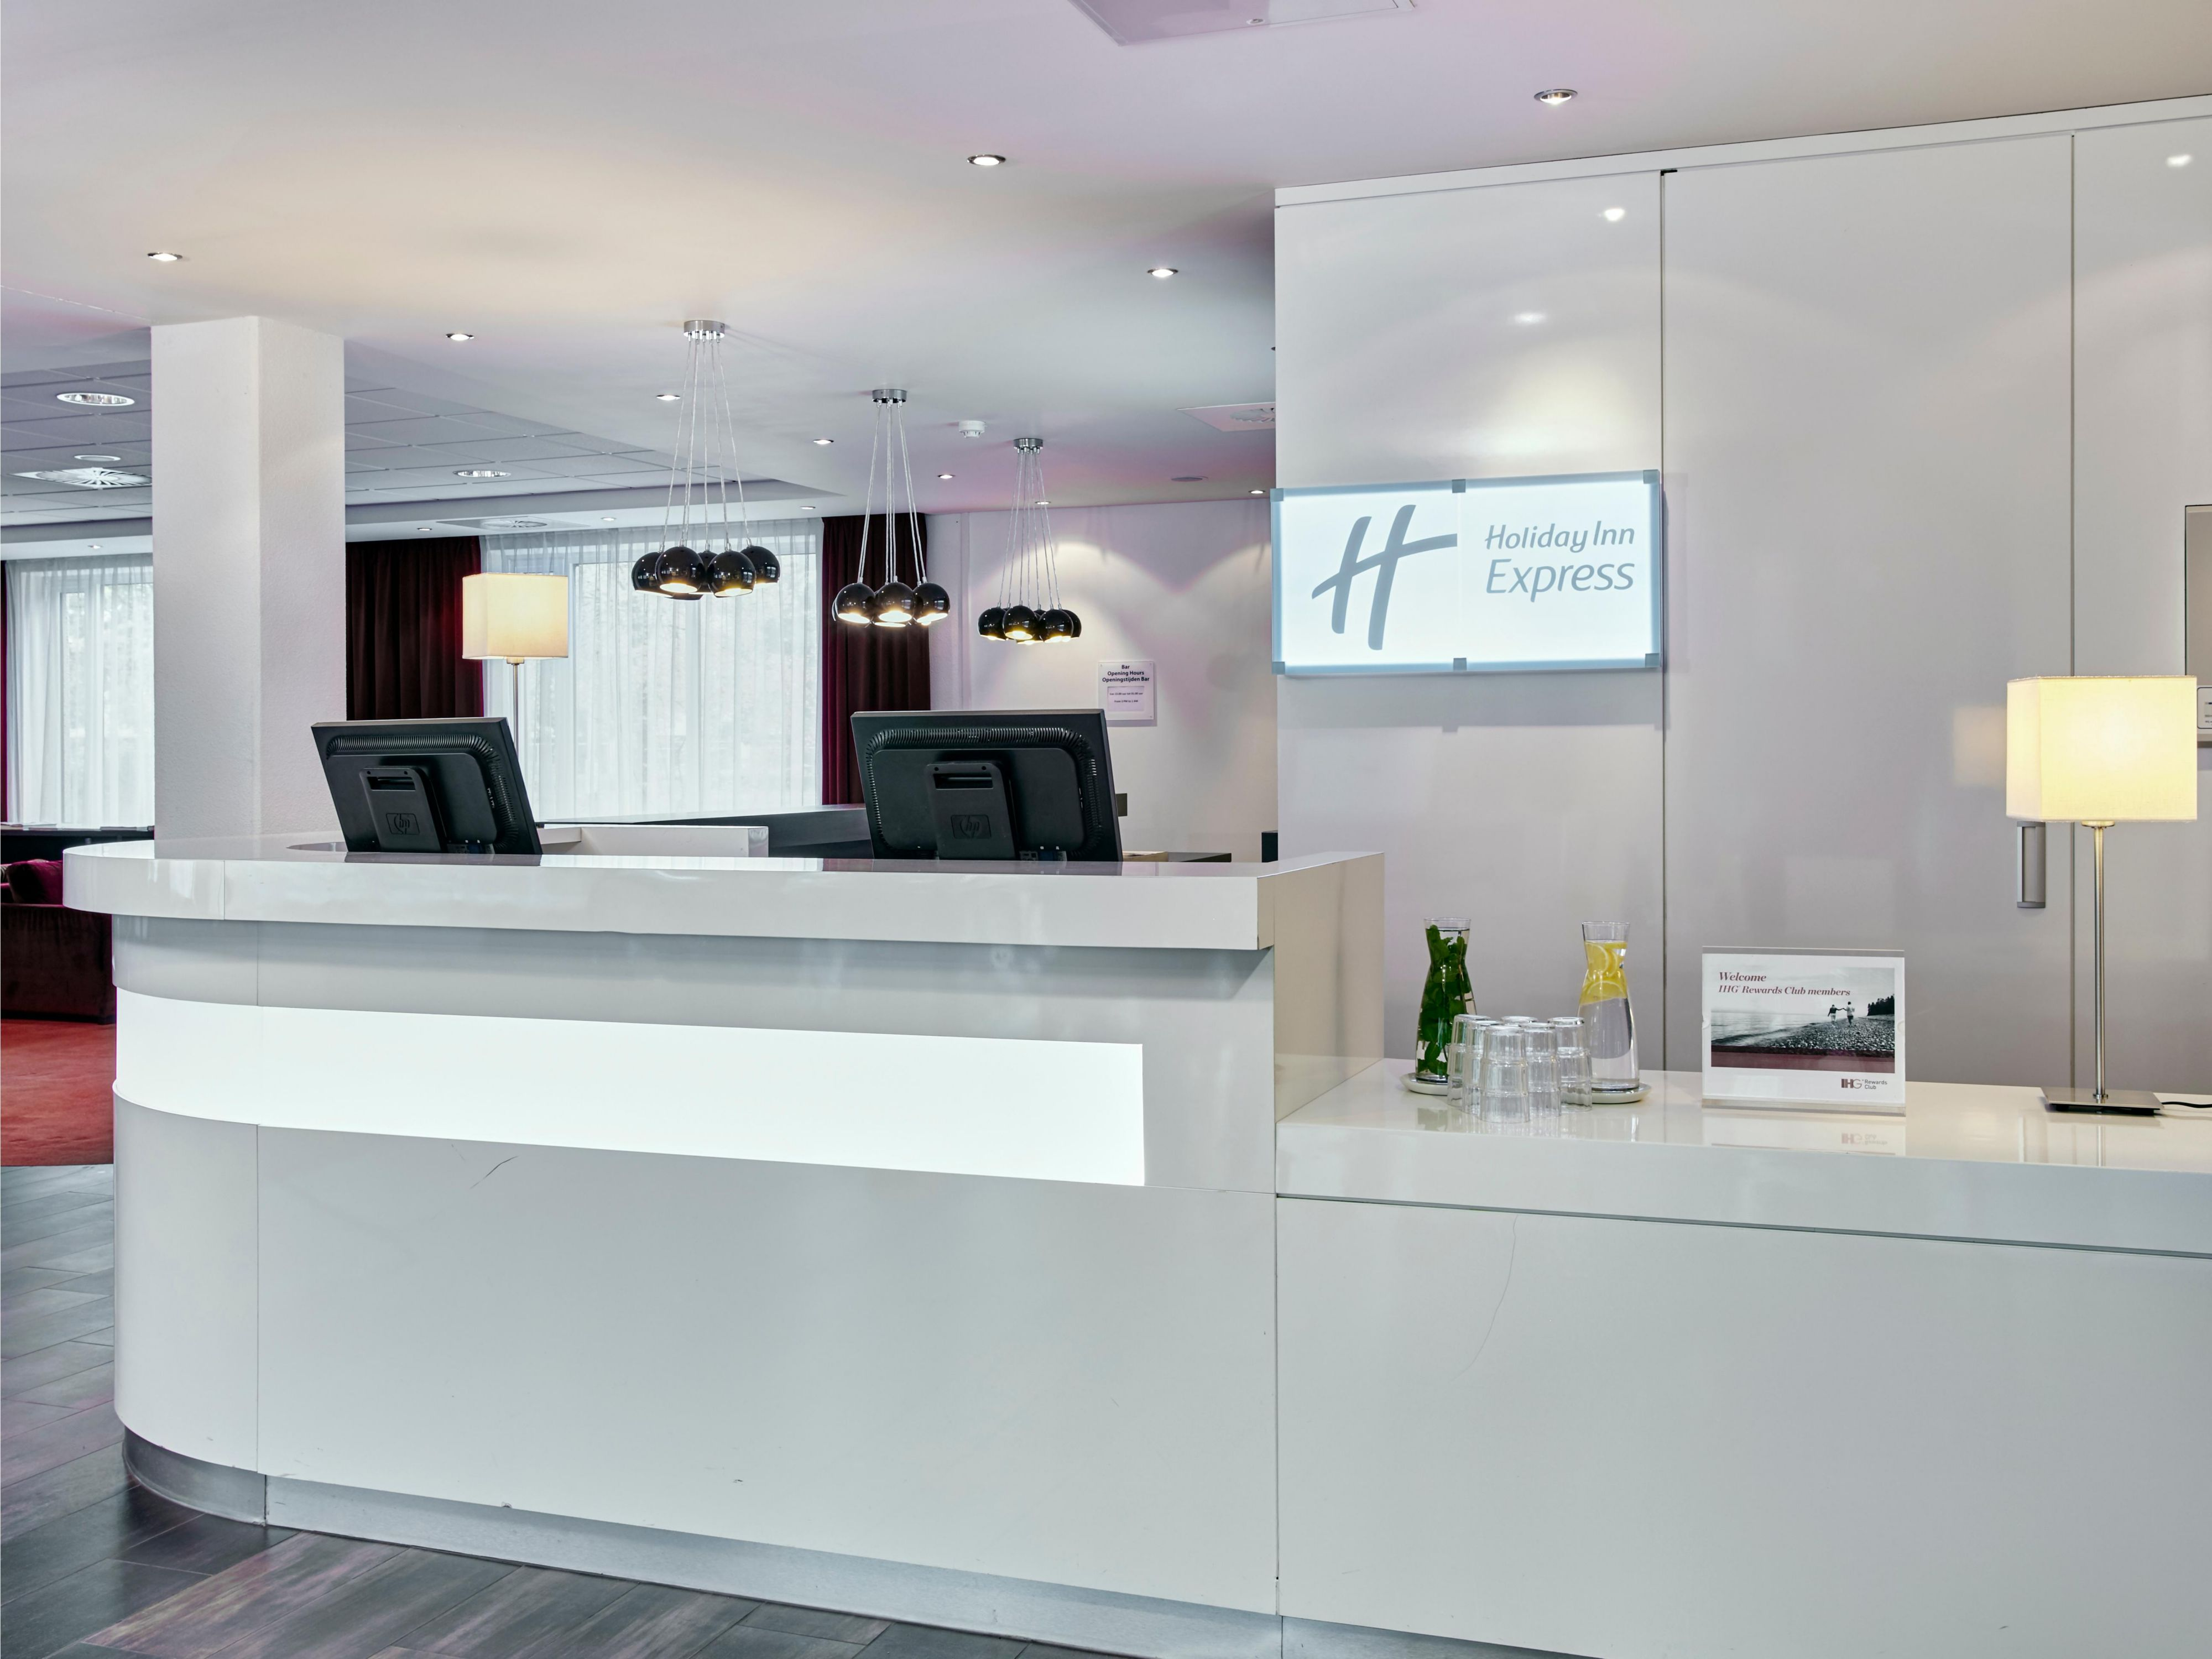 A warm welcome awaits you at Holiday Inn Express Amsterdam Schipol